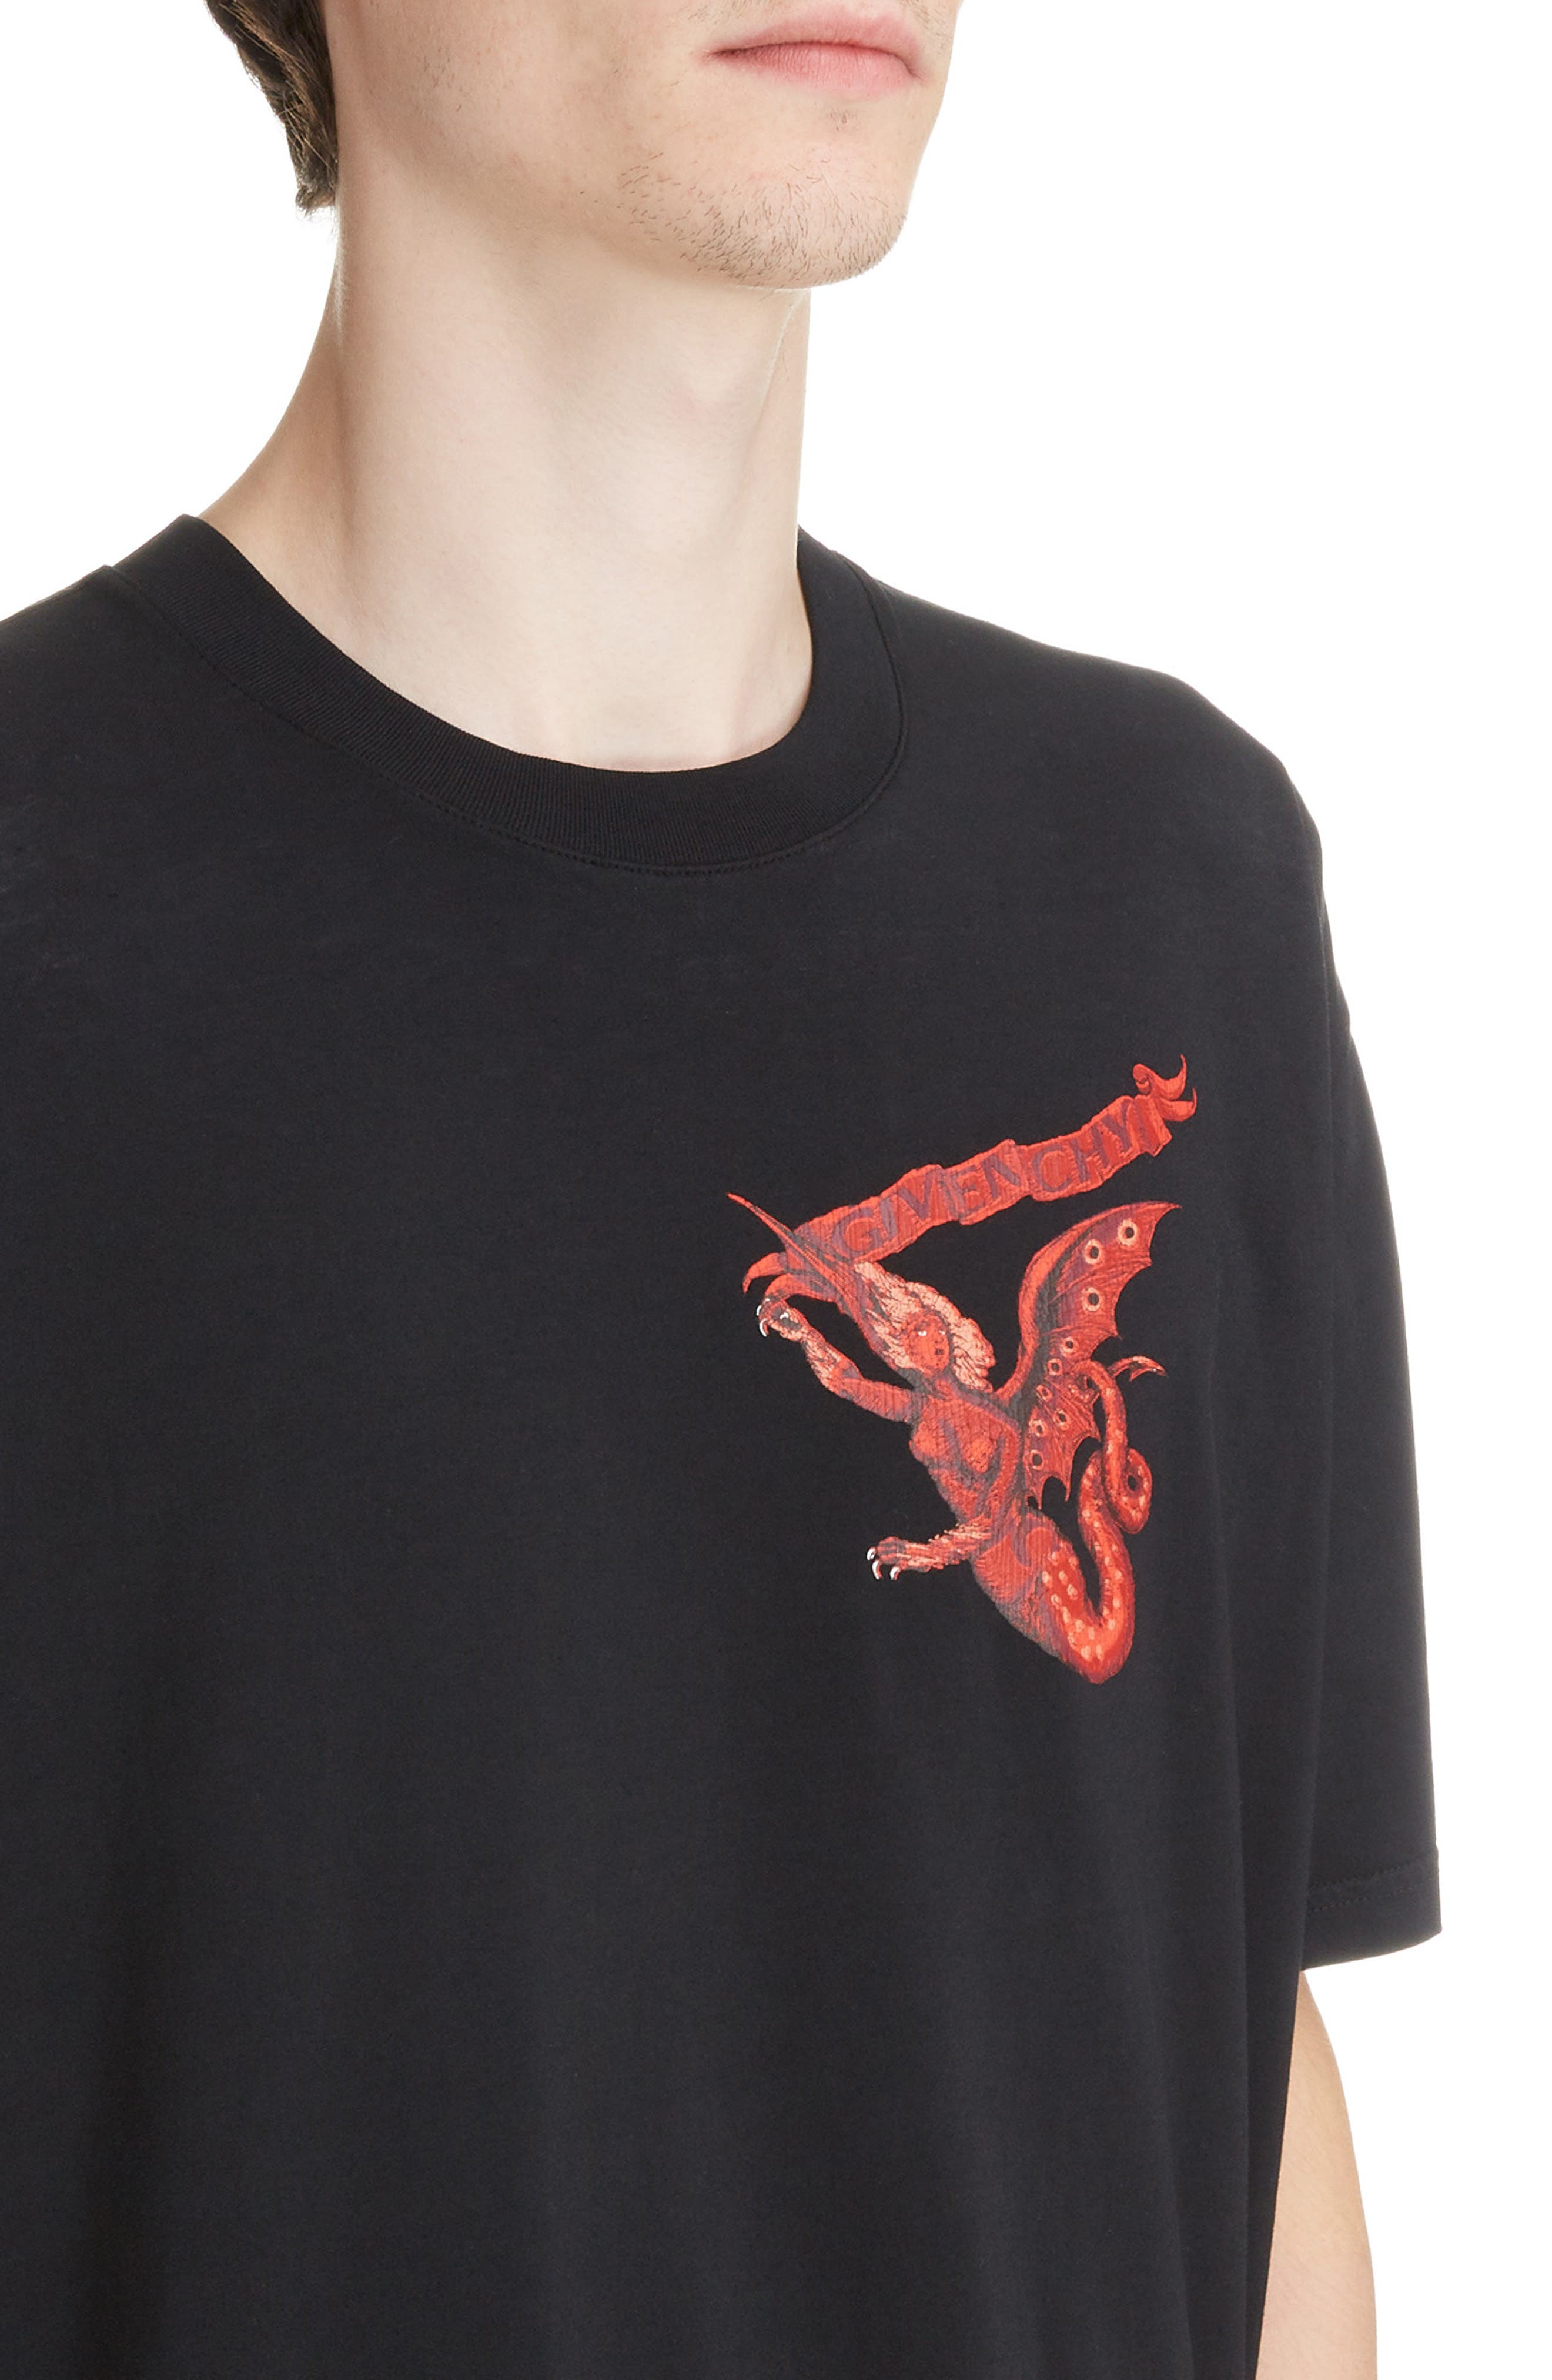 Winged Beast Graphic T-Shirt,                             Alternate thumbnail 4, color,                             BLACK